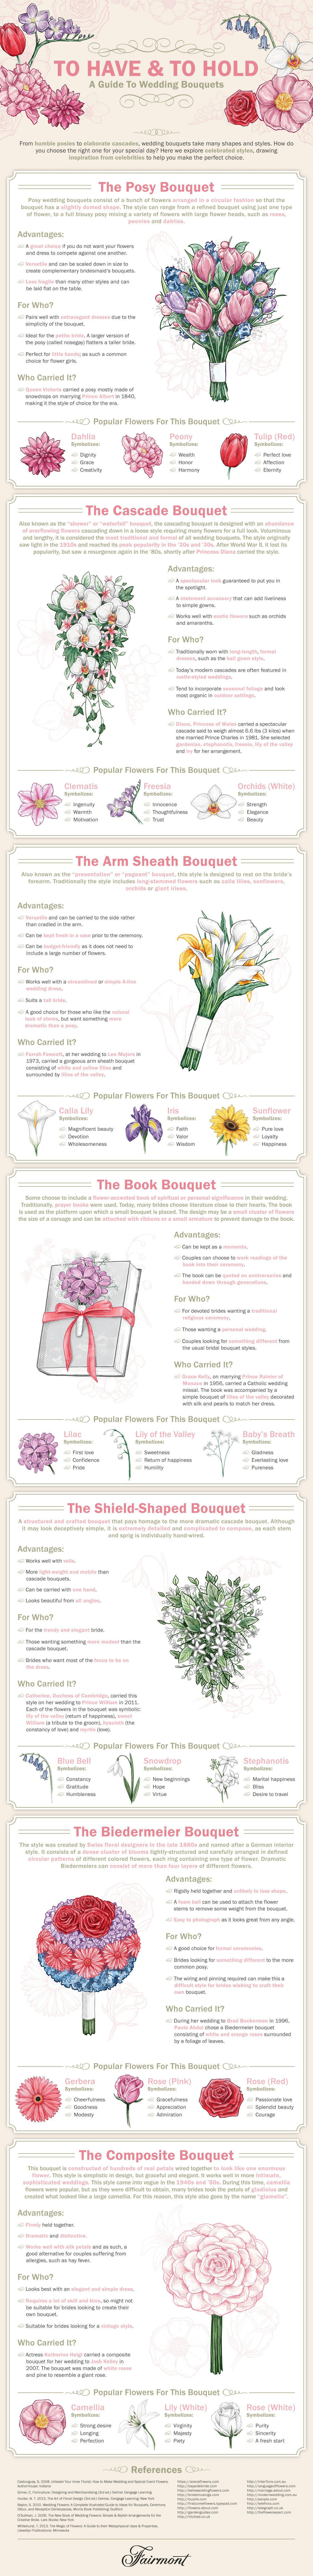 Wedding bouquet styles. From posies to cascades, which one is the perfect bridal bouquet for you?